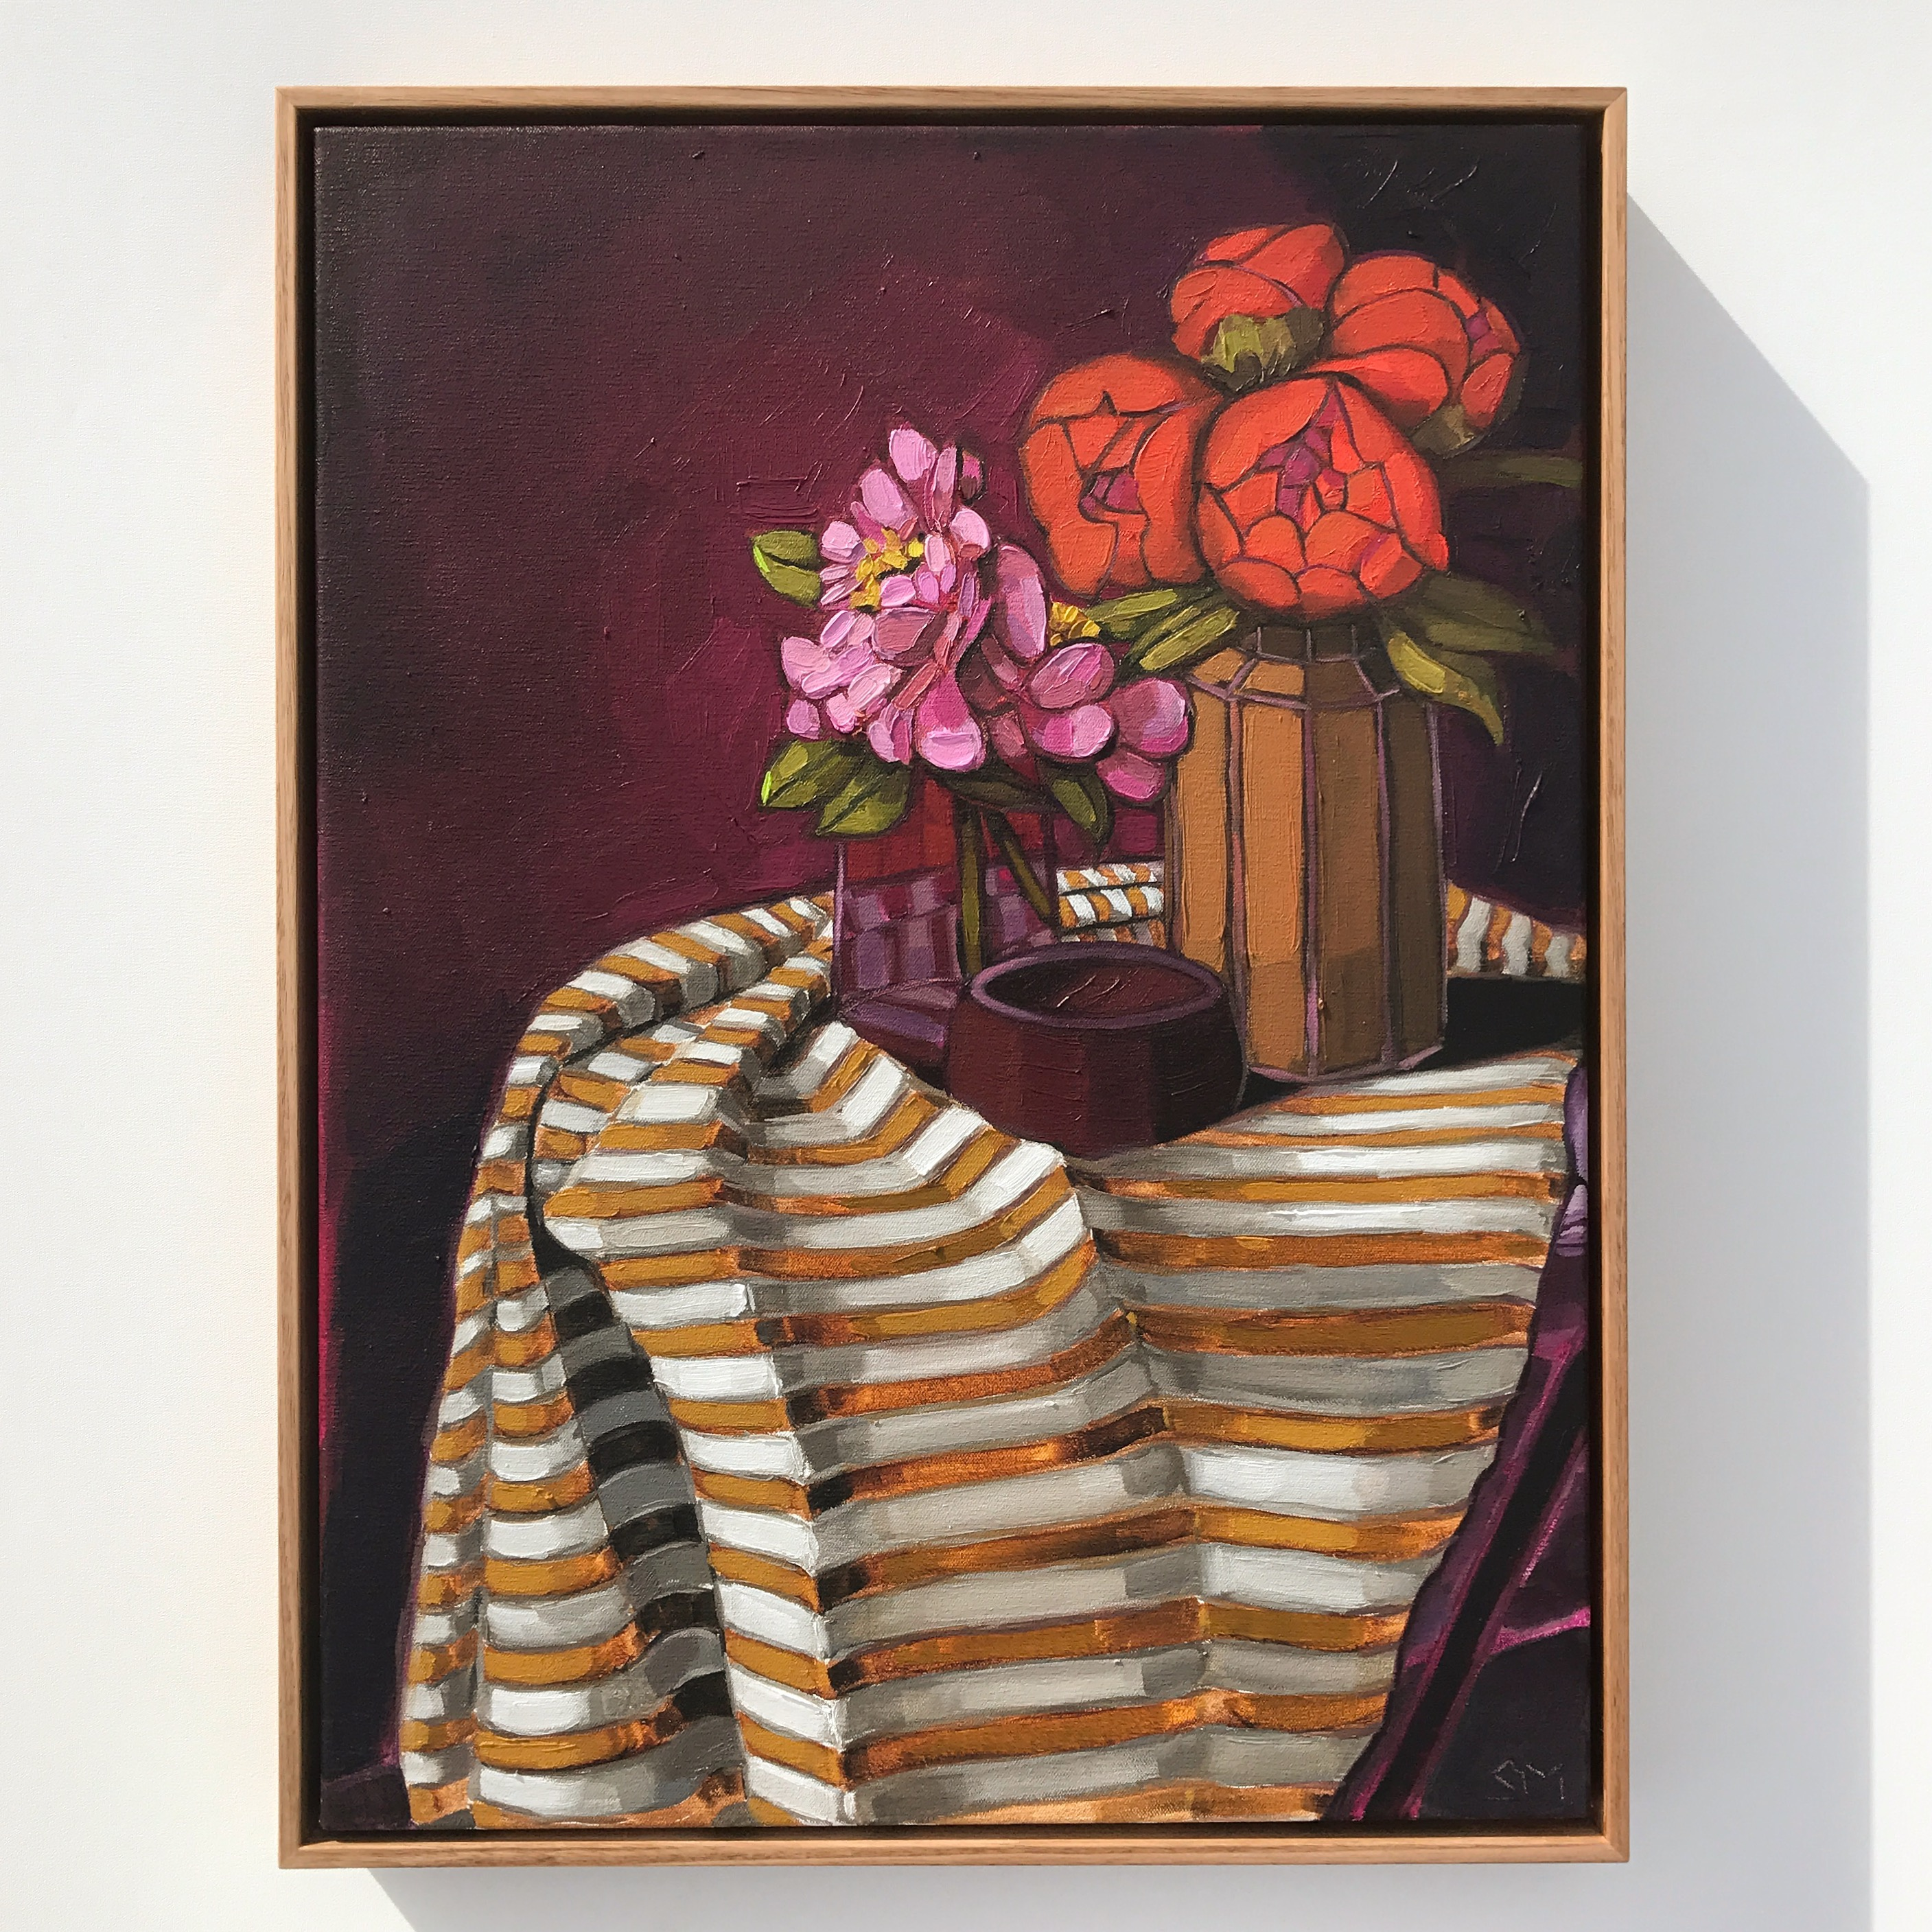 08_17 The Cloth Collection 'Burgundy & Cloth' 63x48cm$1,995